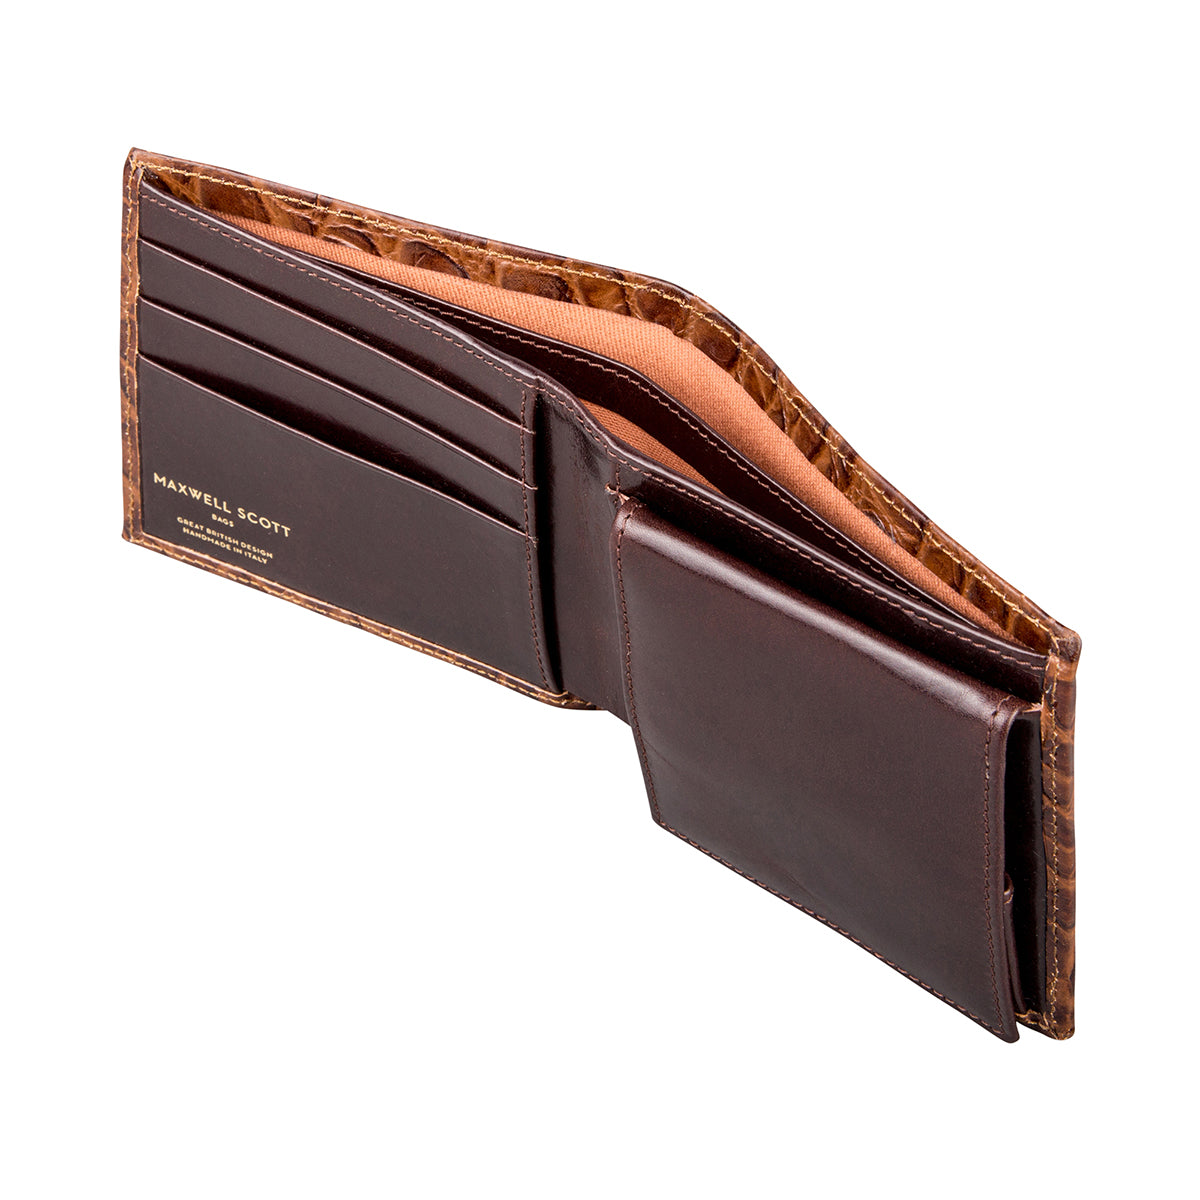 Image 5 of the 'Ticciano' Mock Croc Chocolate Veg-Tanned Leather Wallet with Coin Pocket